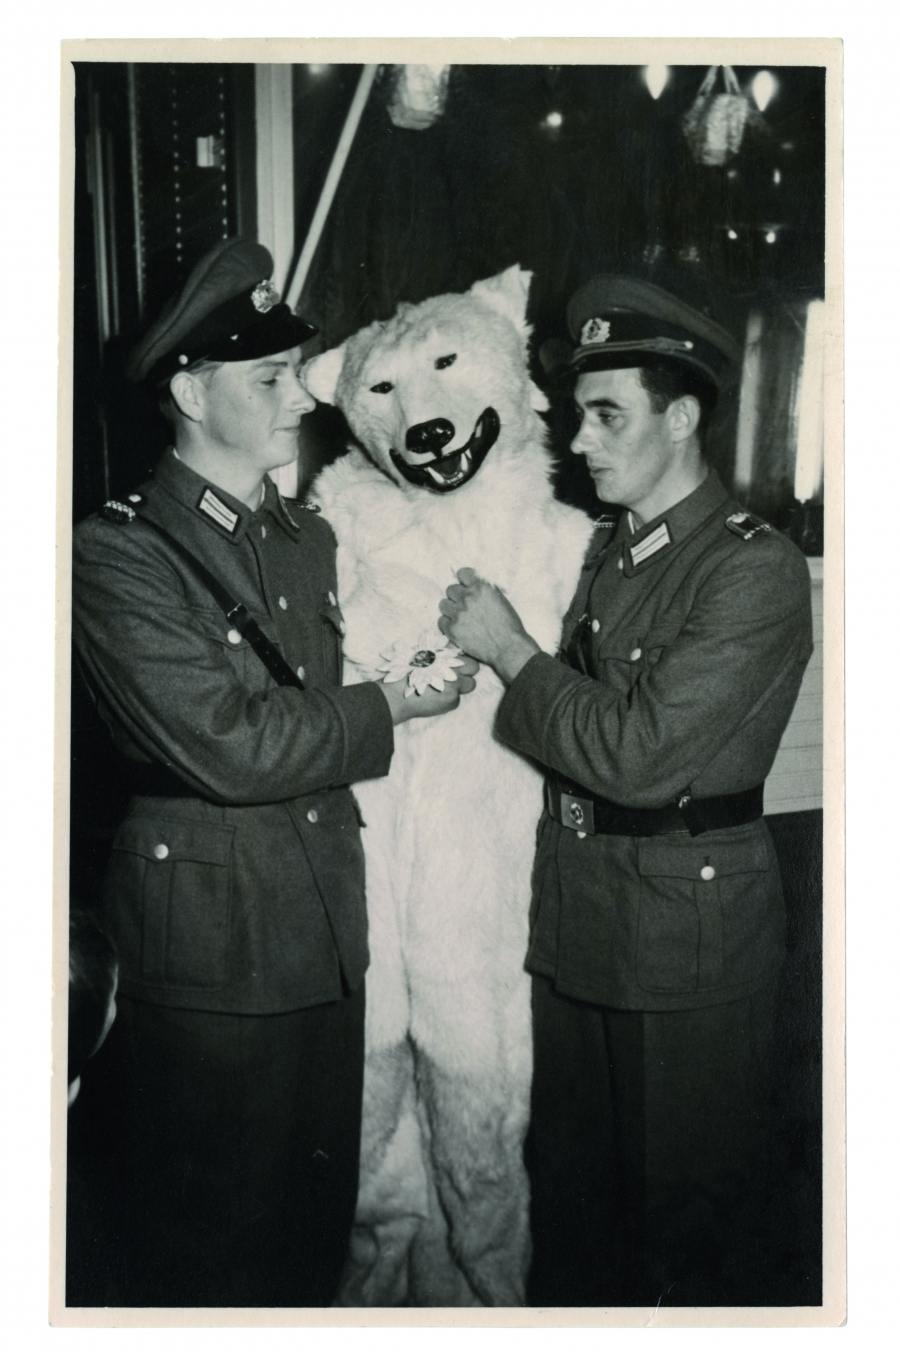 A smiling polar bear sandwiched between two German soldiers in Wehrmacht uniforms.